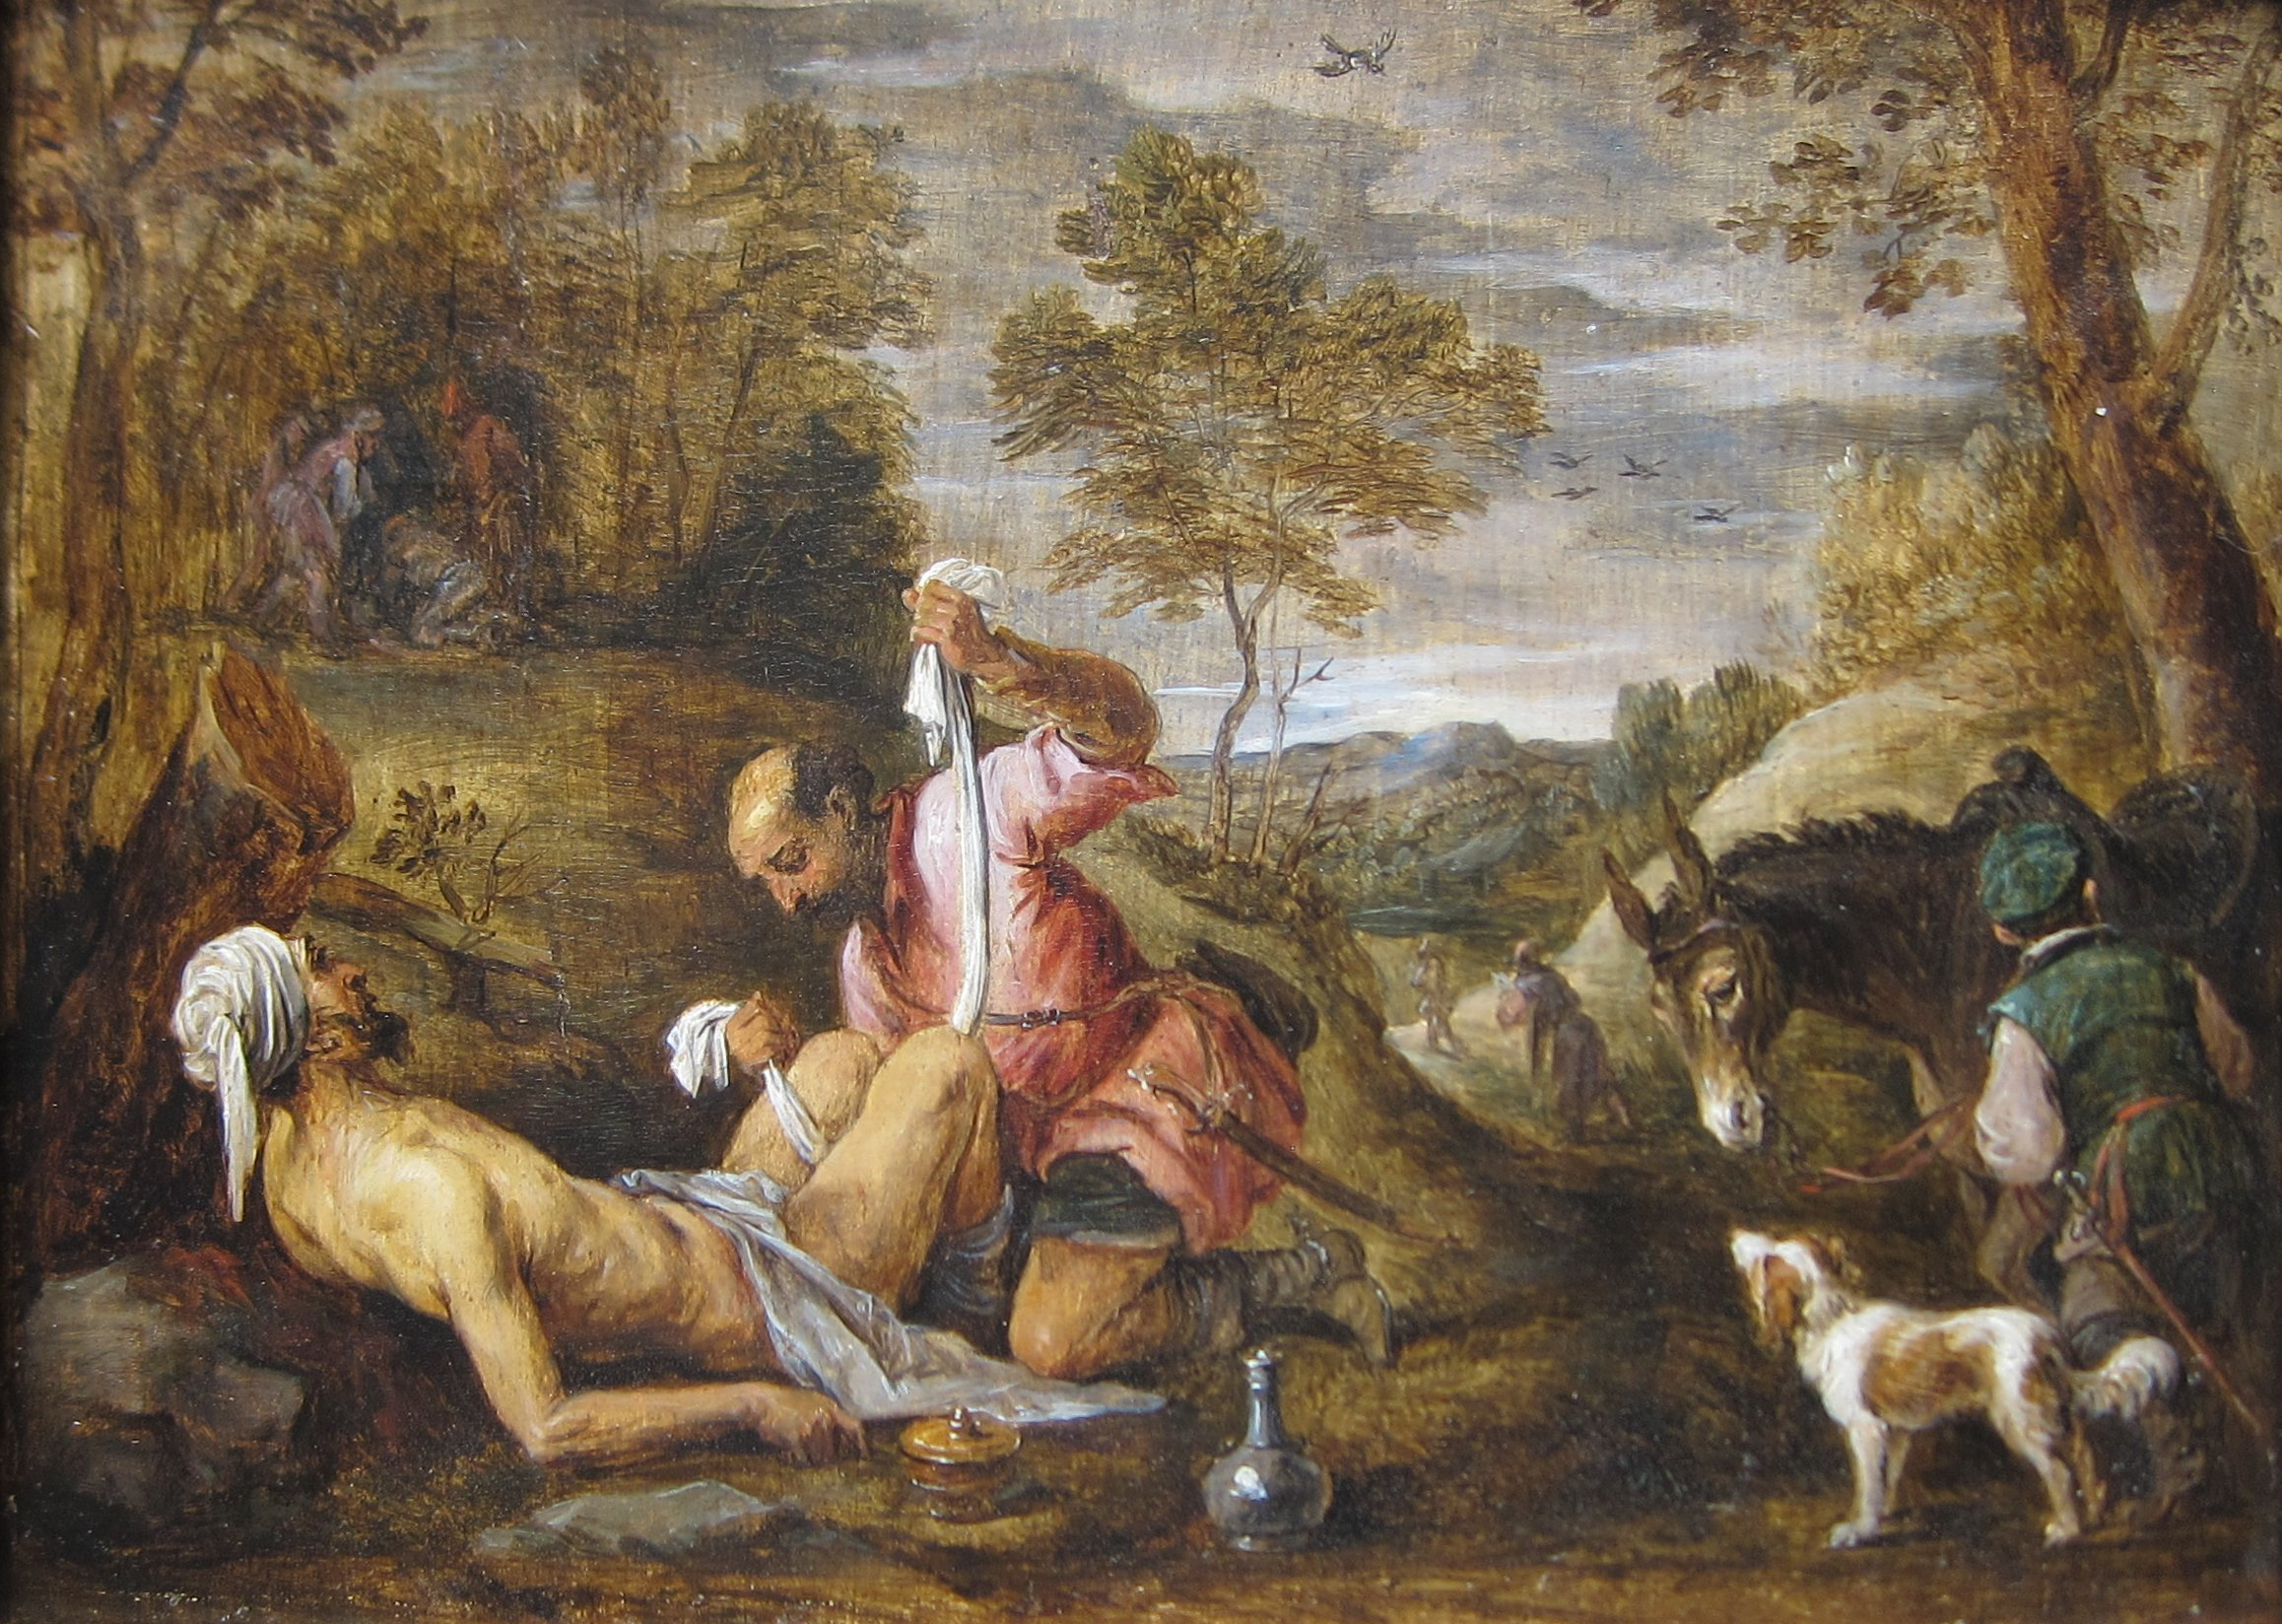 File:'The Good Samaritan' by David Teniers the younger after